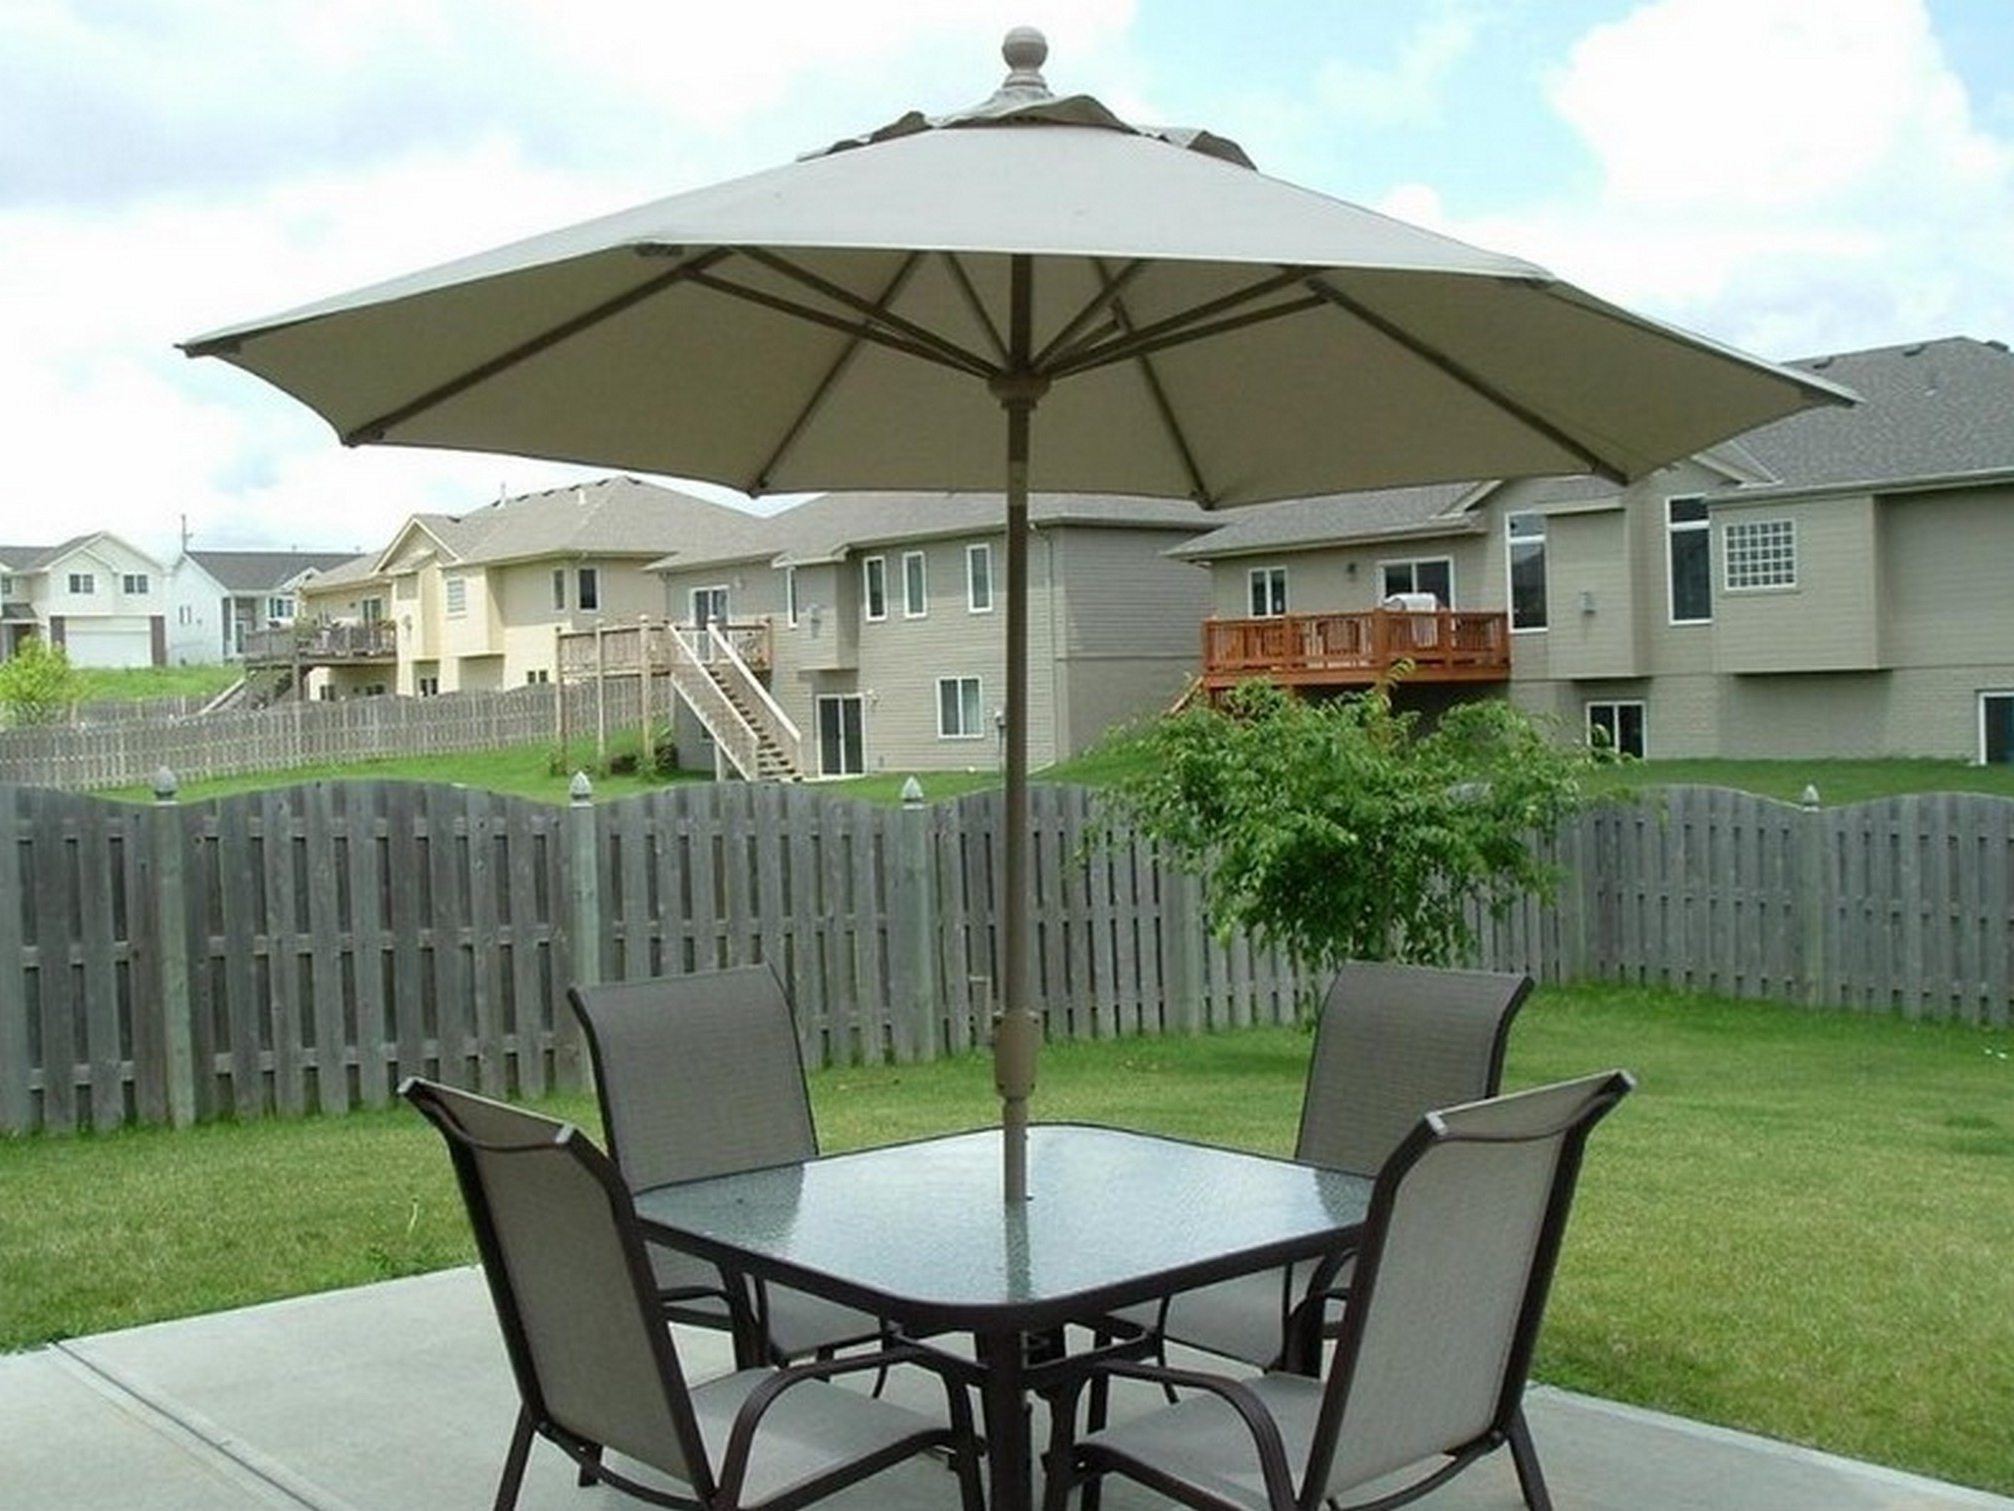 Free Standing Umbrellas For Patio Intended For Recent The Most New Patio Table Umbrella Property Ideas – Liberdadi (Gallery 3 of 20)